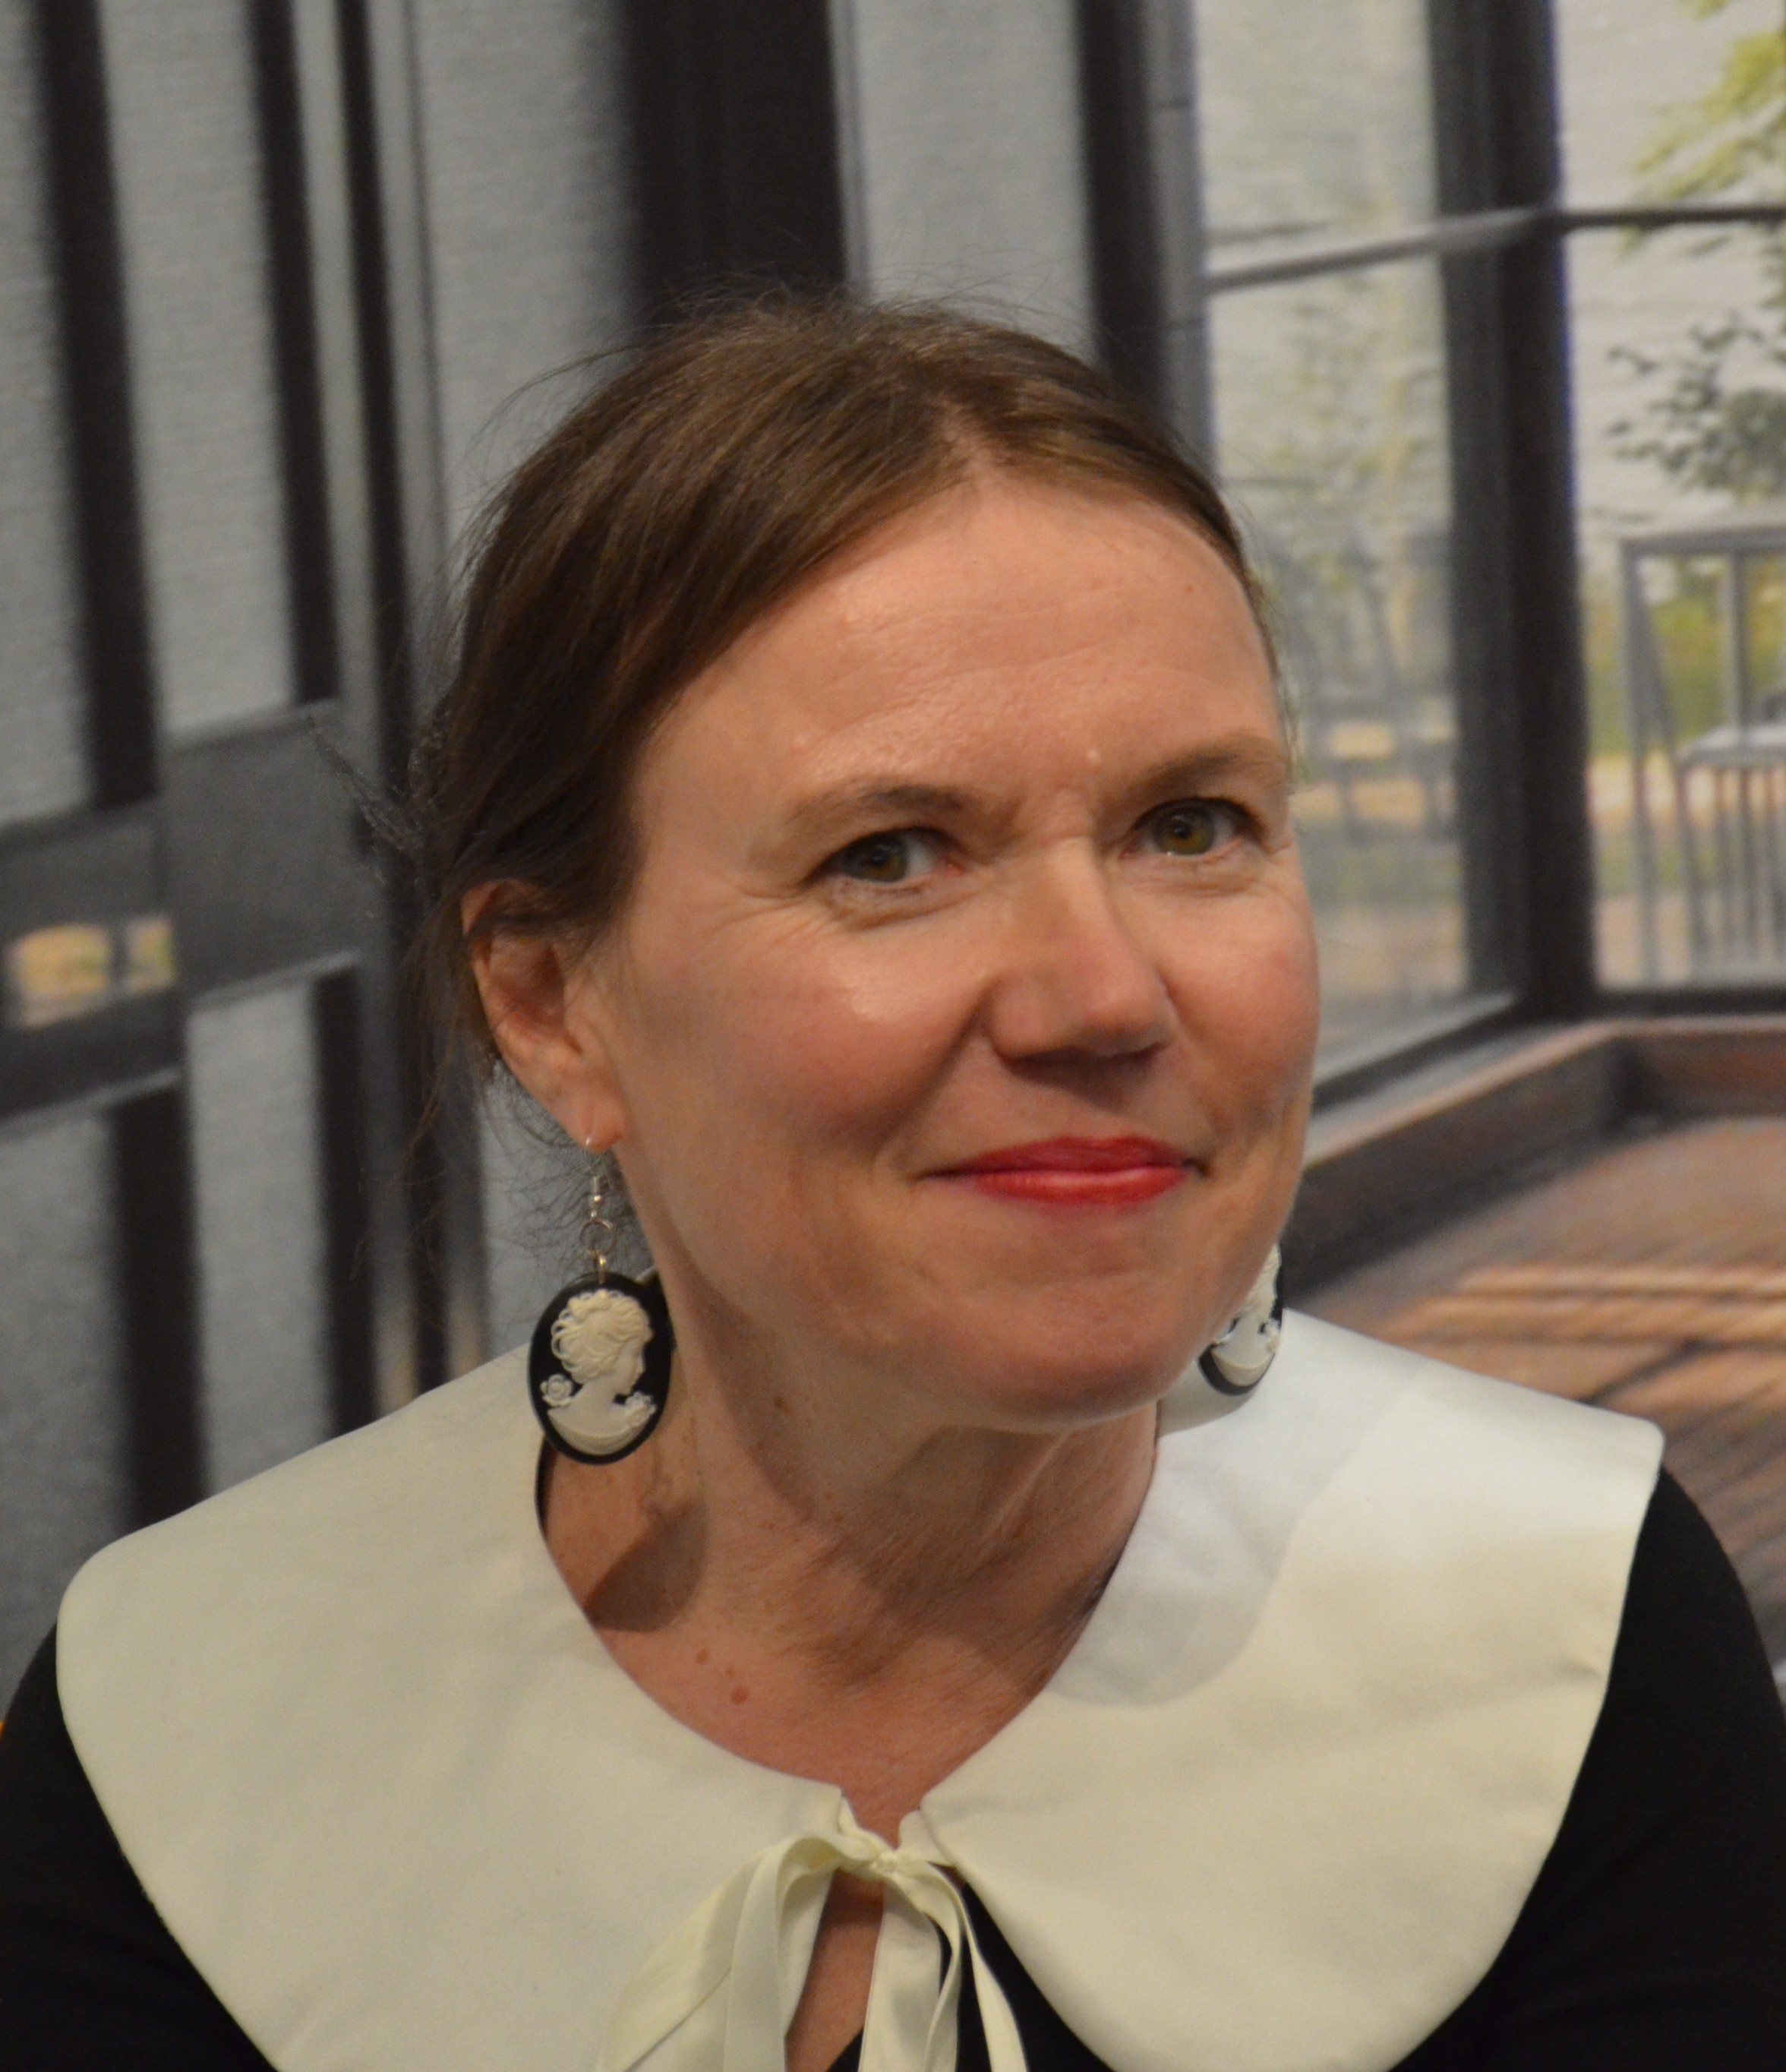 Image of Rosa Liksom from Wikidata